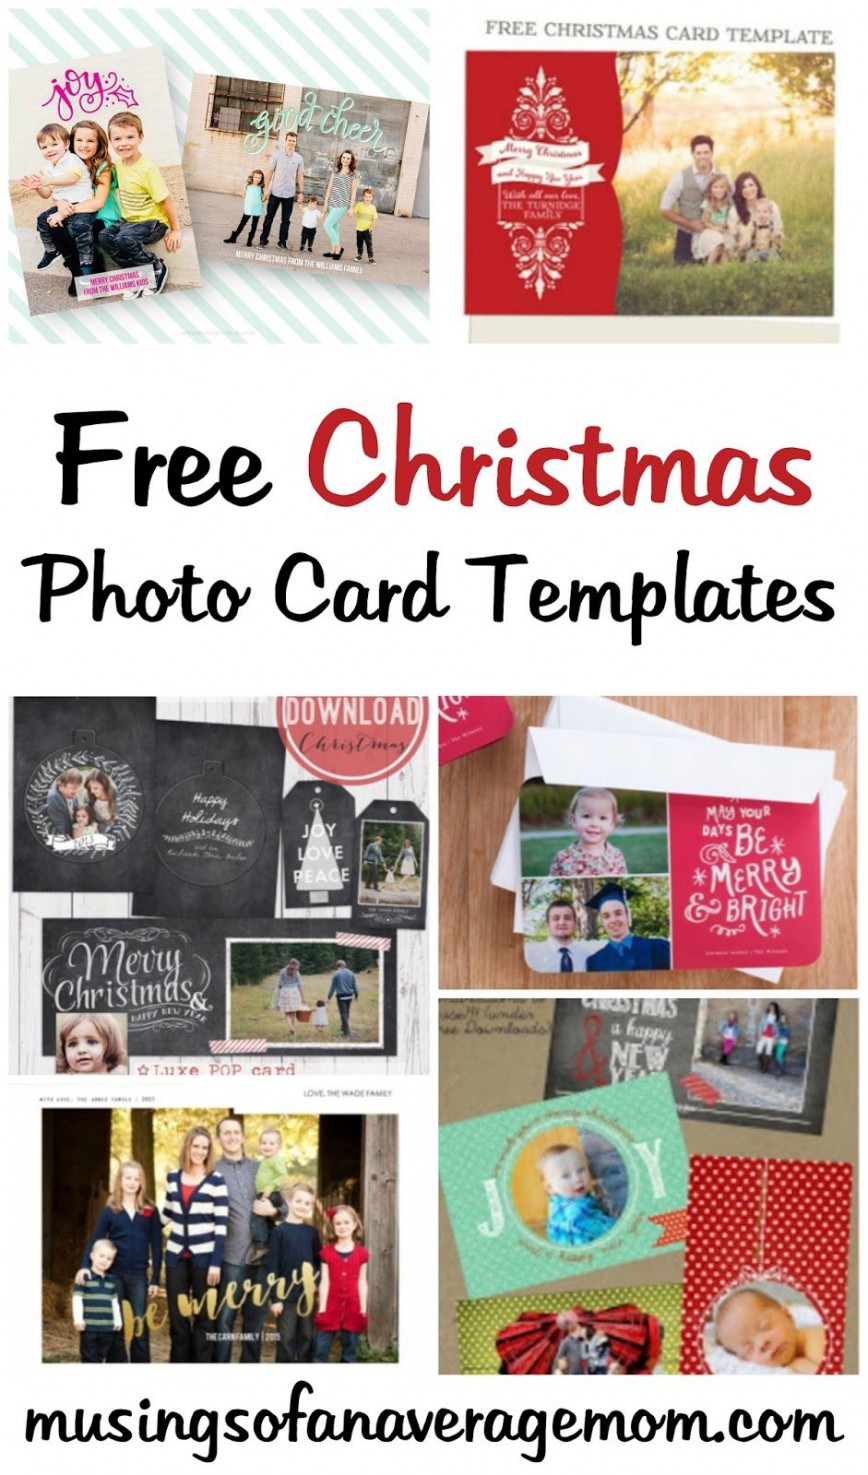 007 Beautiful Free Photo Christma Card Template Concept  Templates For Word Photoshop Digital